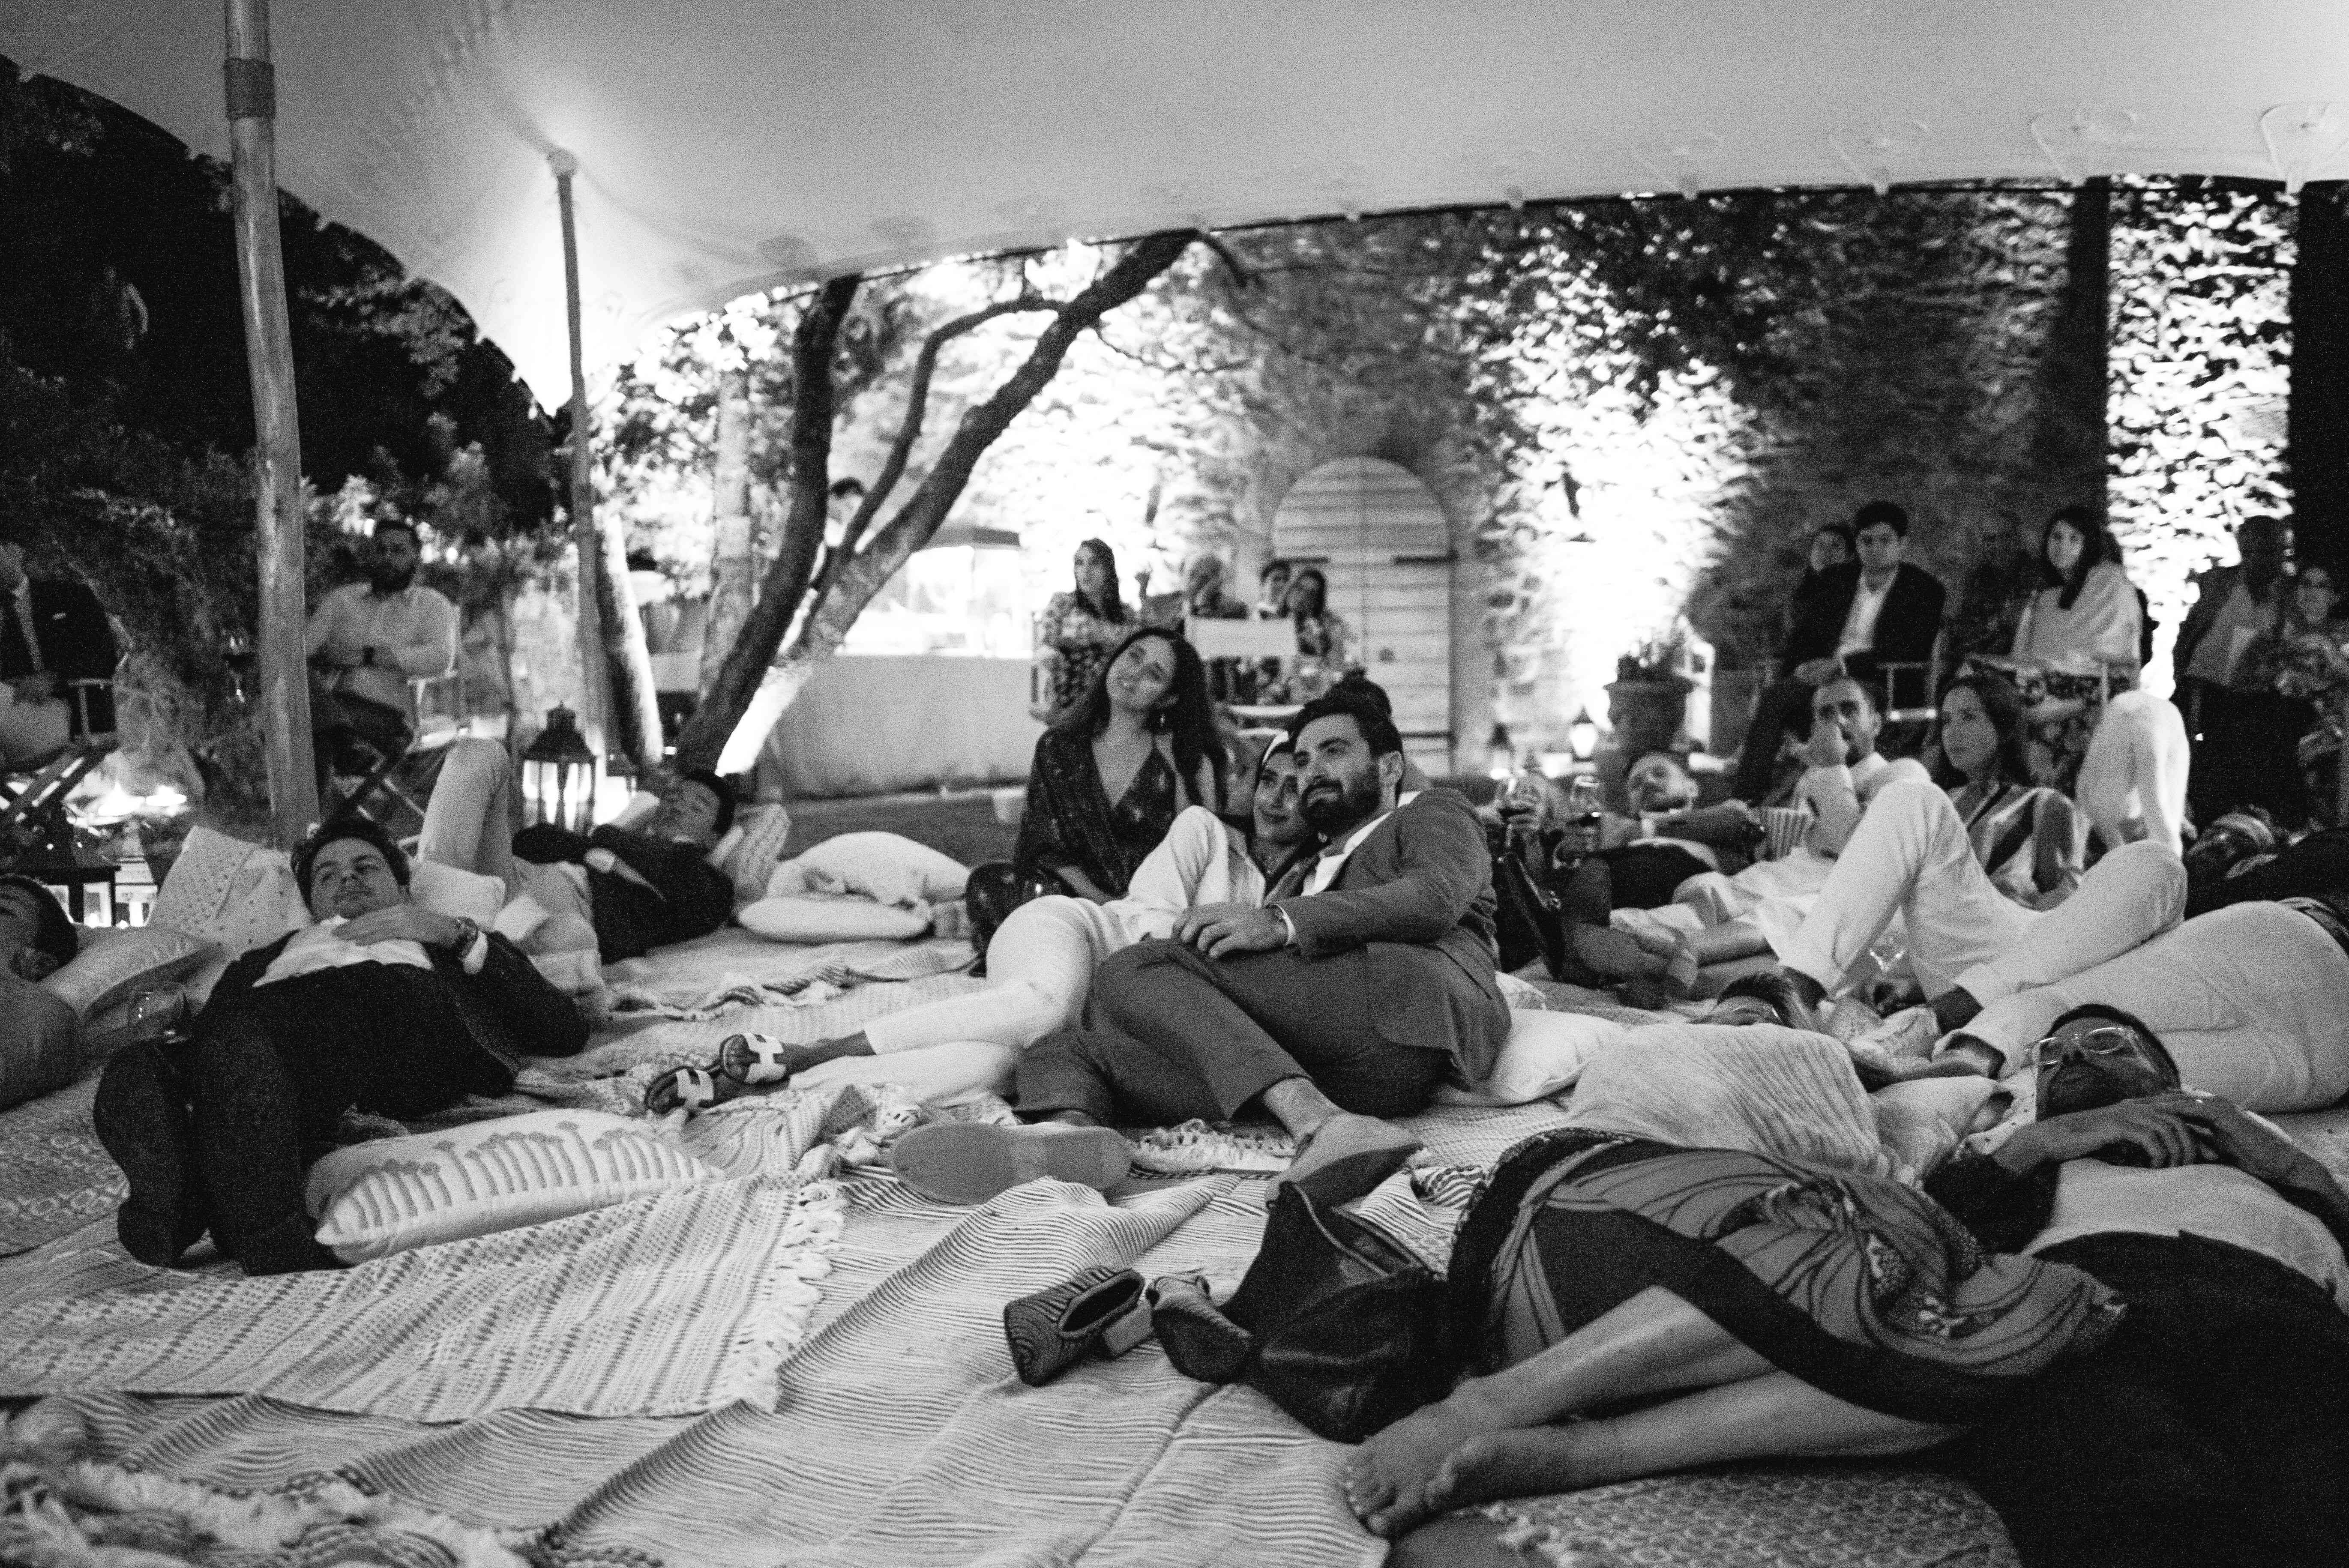 Guests sitting on blankets outdoors under a tent